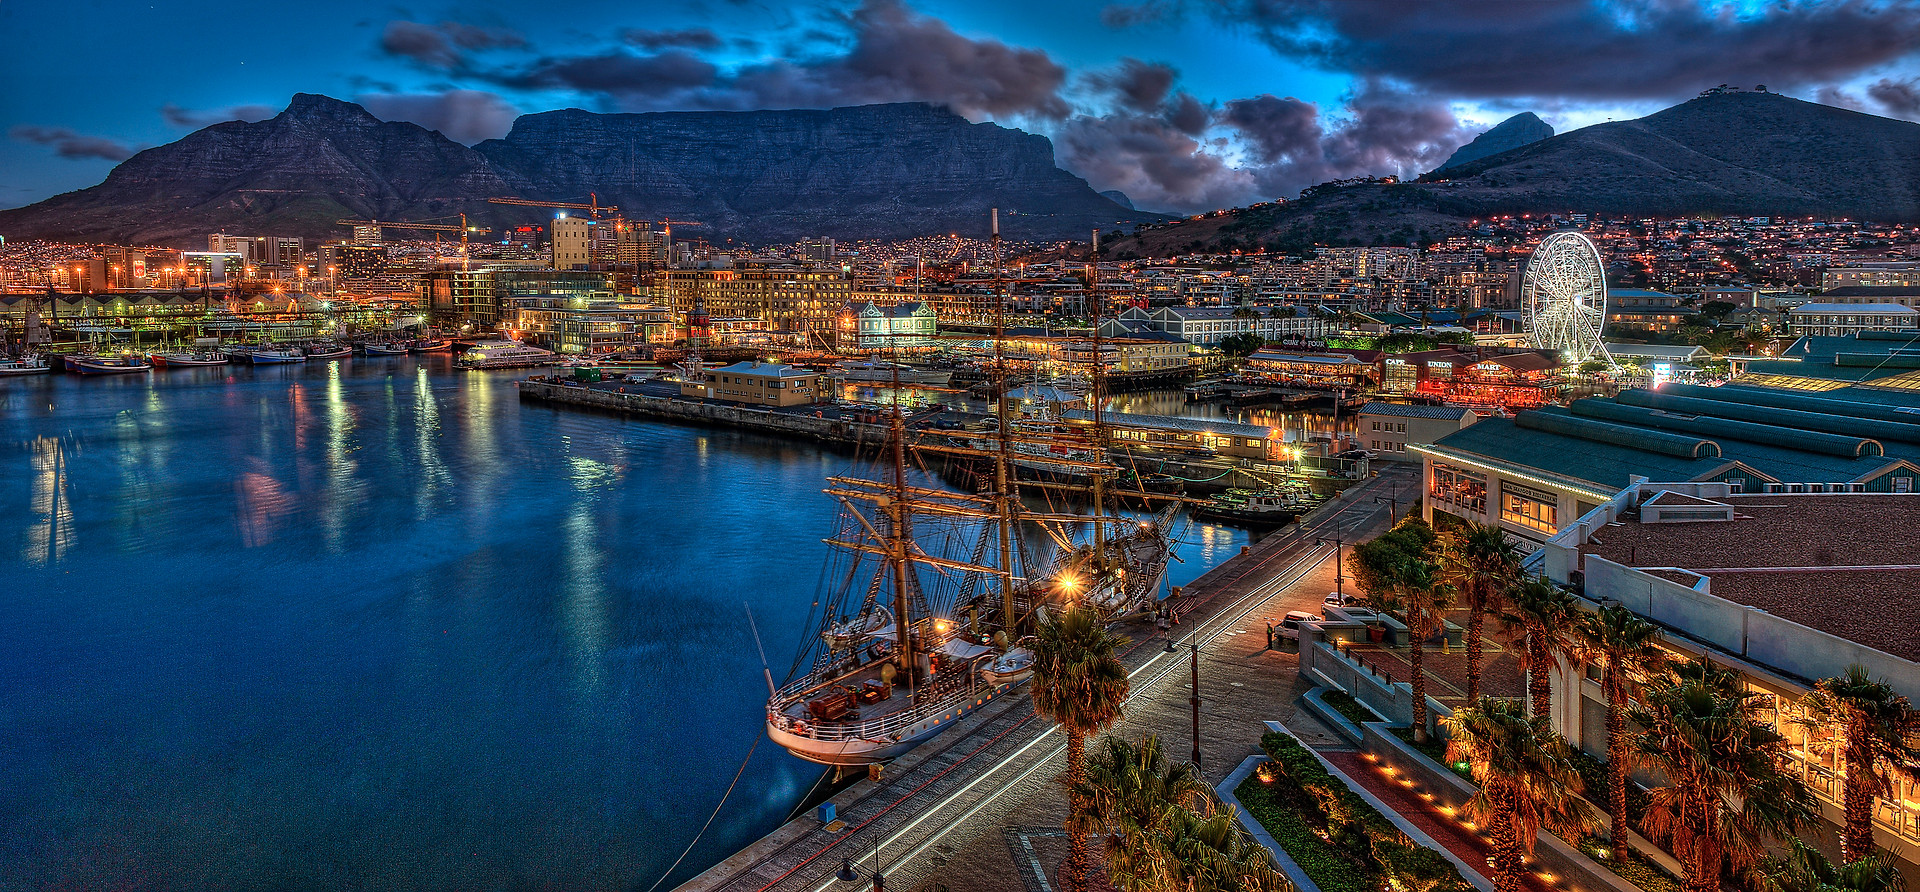 V&A Waterfront at night, overlooking Table Mountain